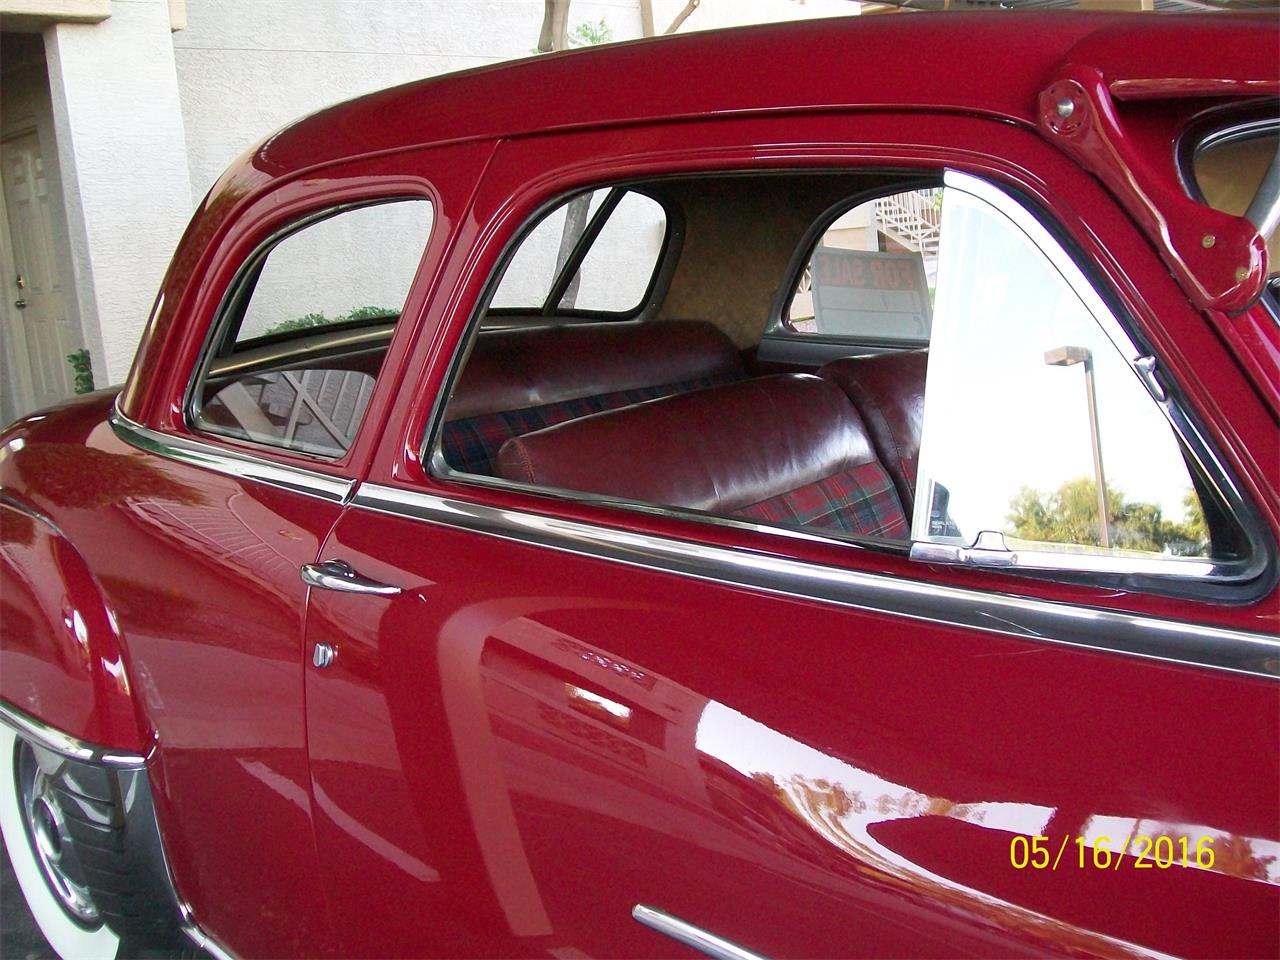 Large Picture of Classic '50 Chrysler Windsor located in Tempe Arizona Offered by a Private Seller - J1SQ